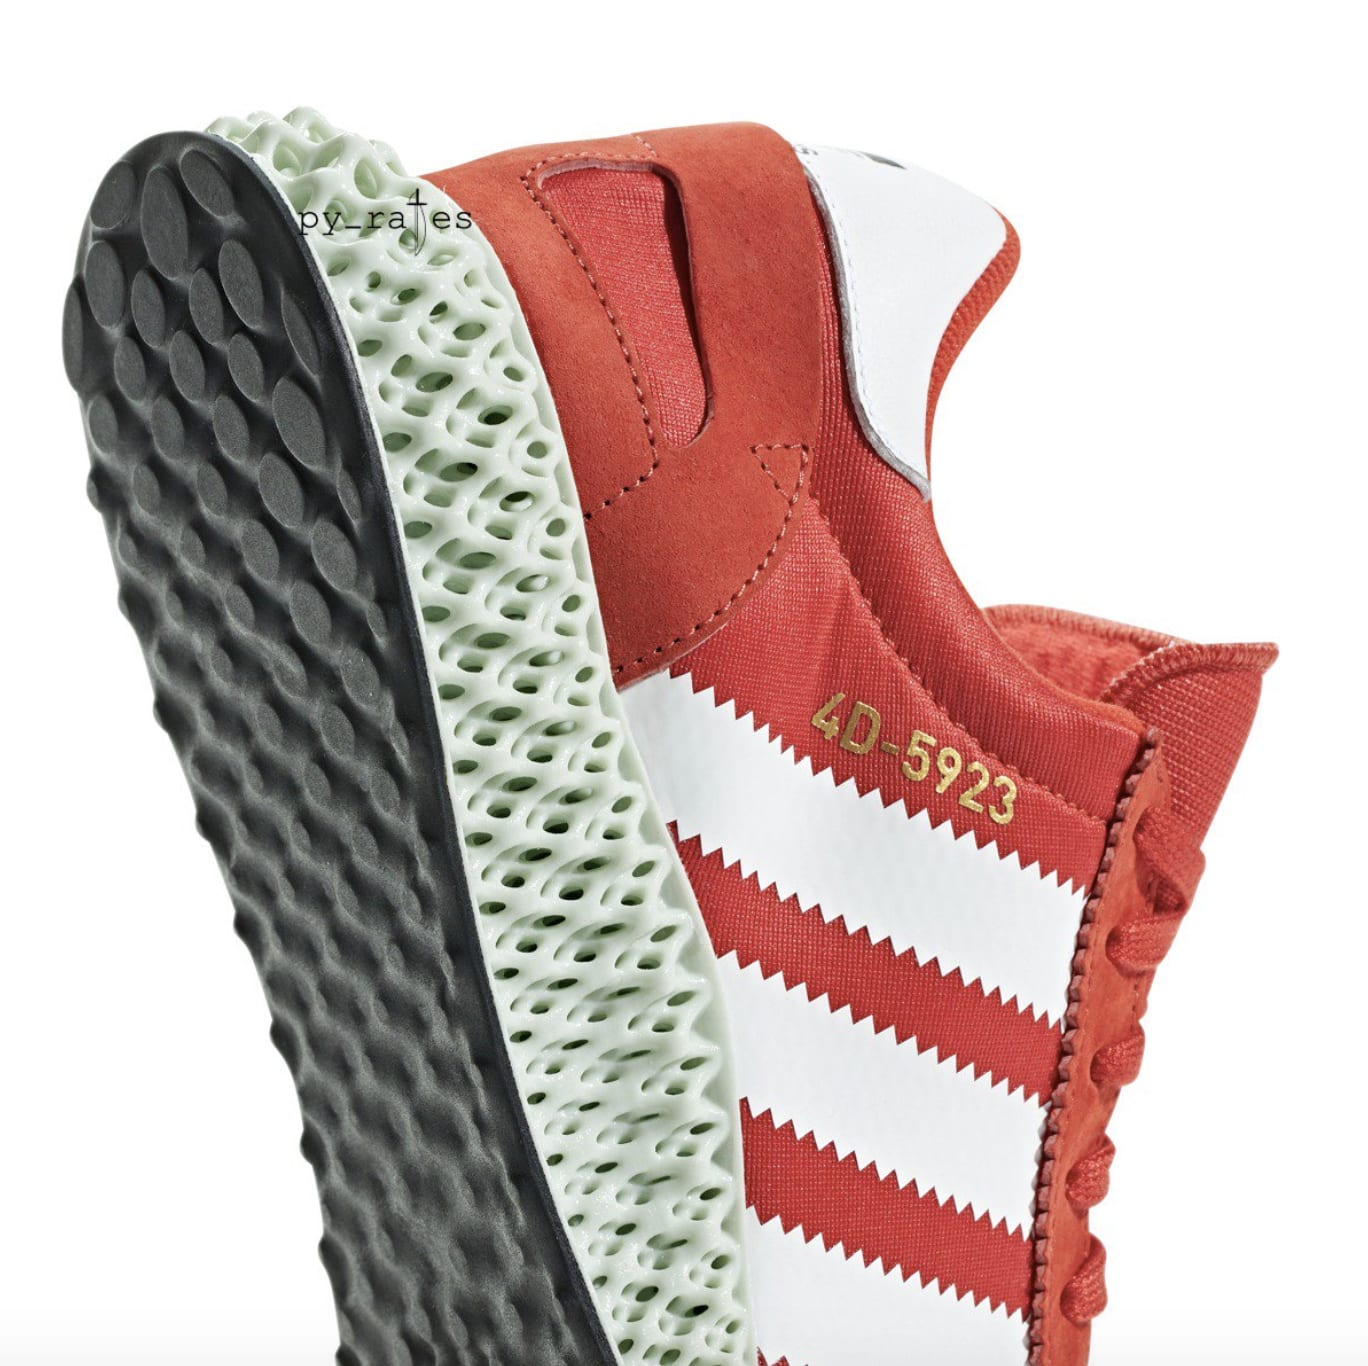 Adidas 4D-5923 'Red/White' (Heel)